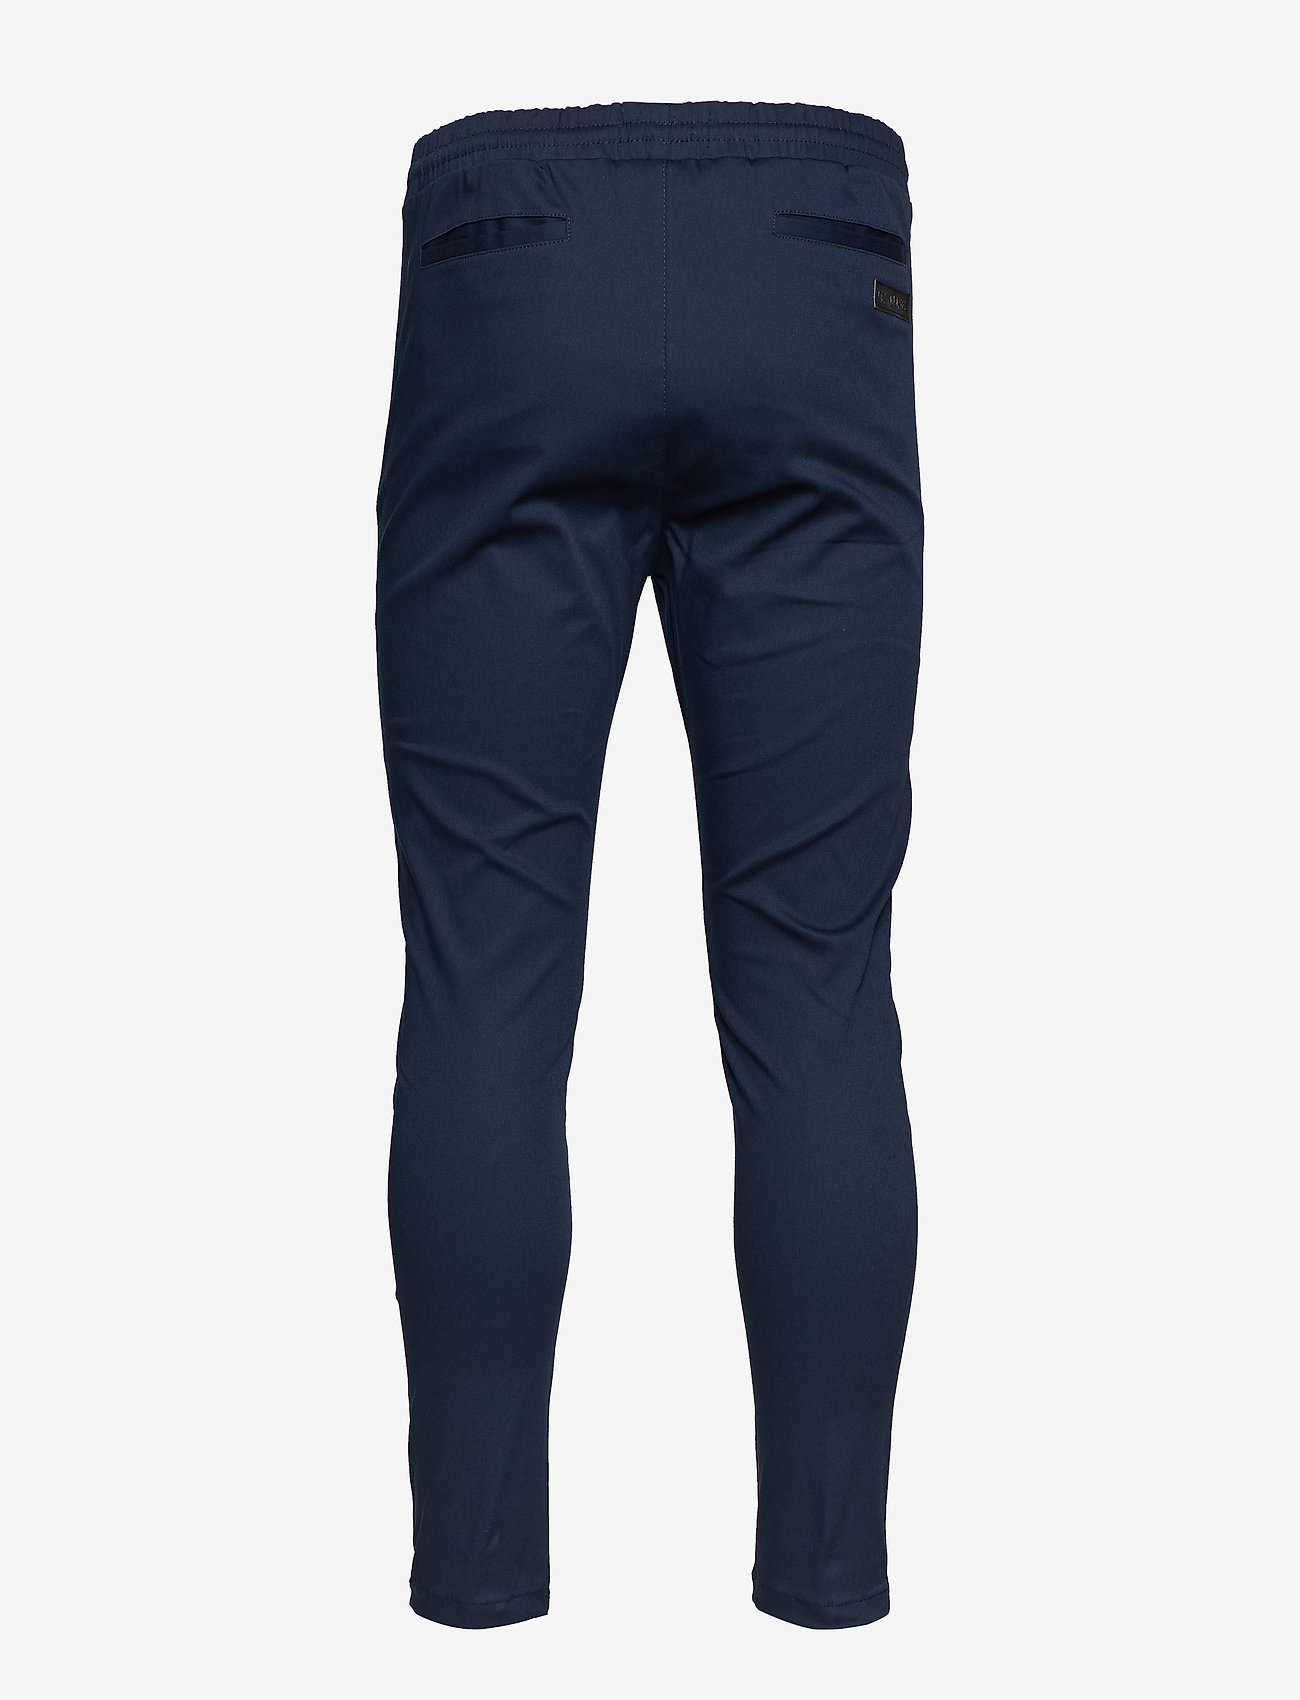 Flex 2.0 (Navy) (599.20 kr) - Just Junkies